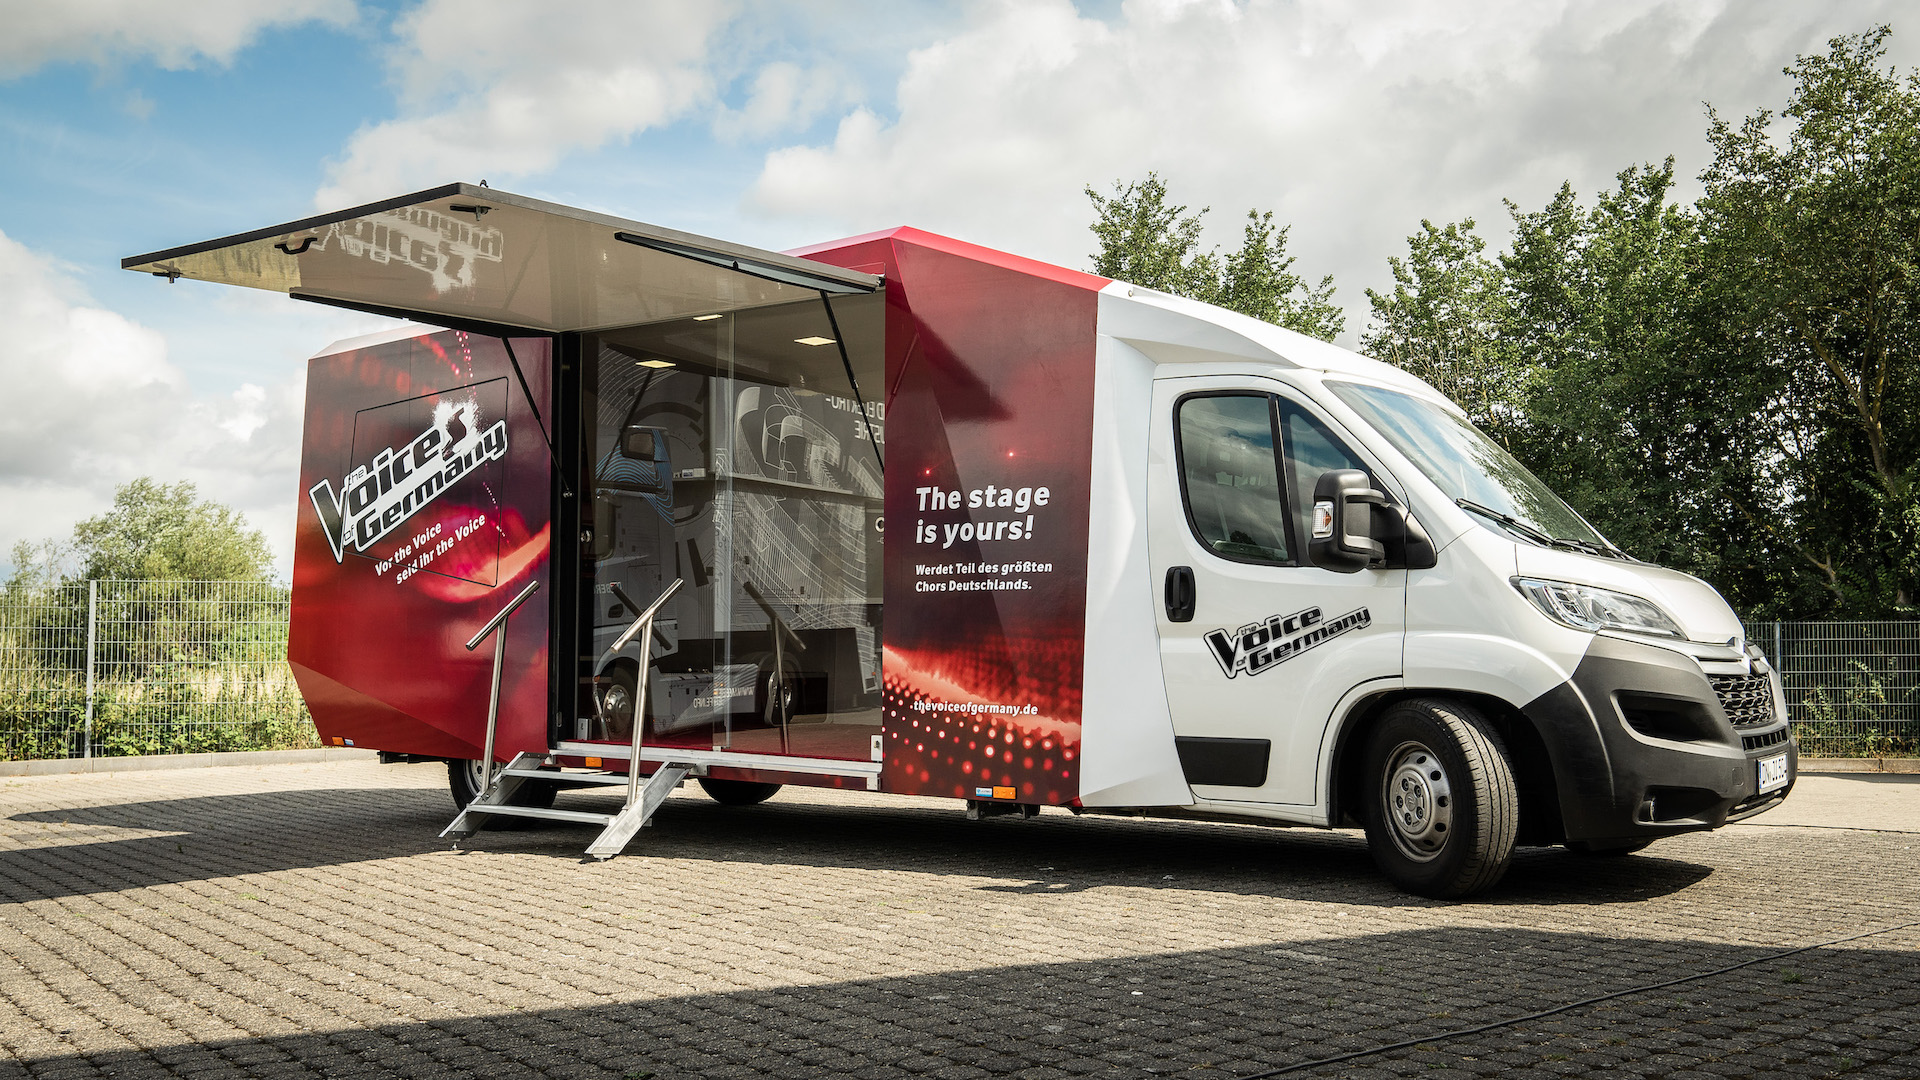 Voice_of_germany_truck_roadshow